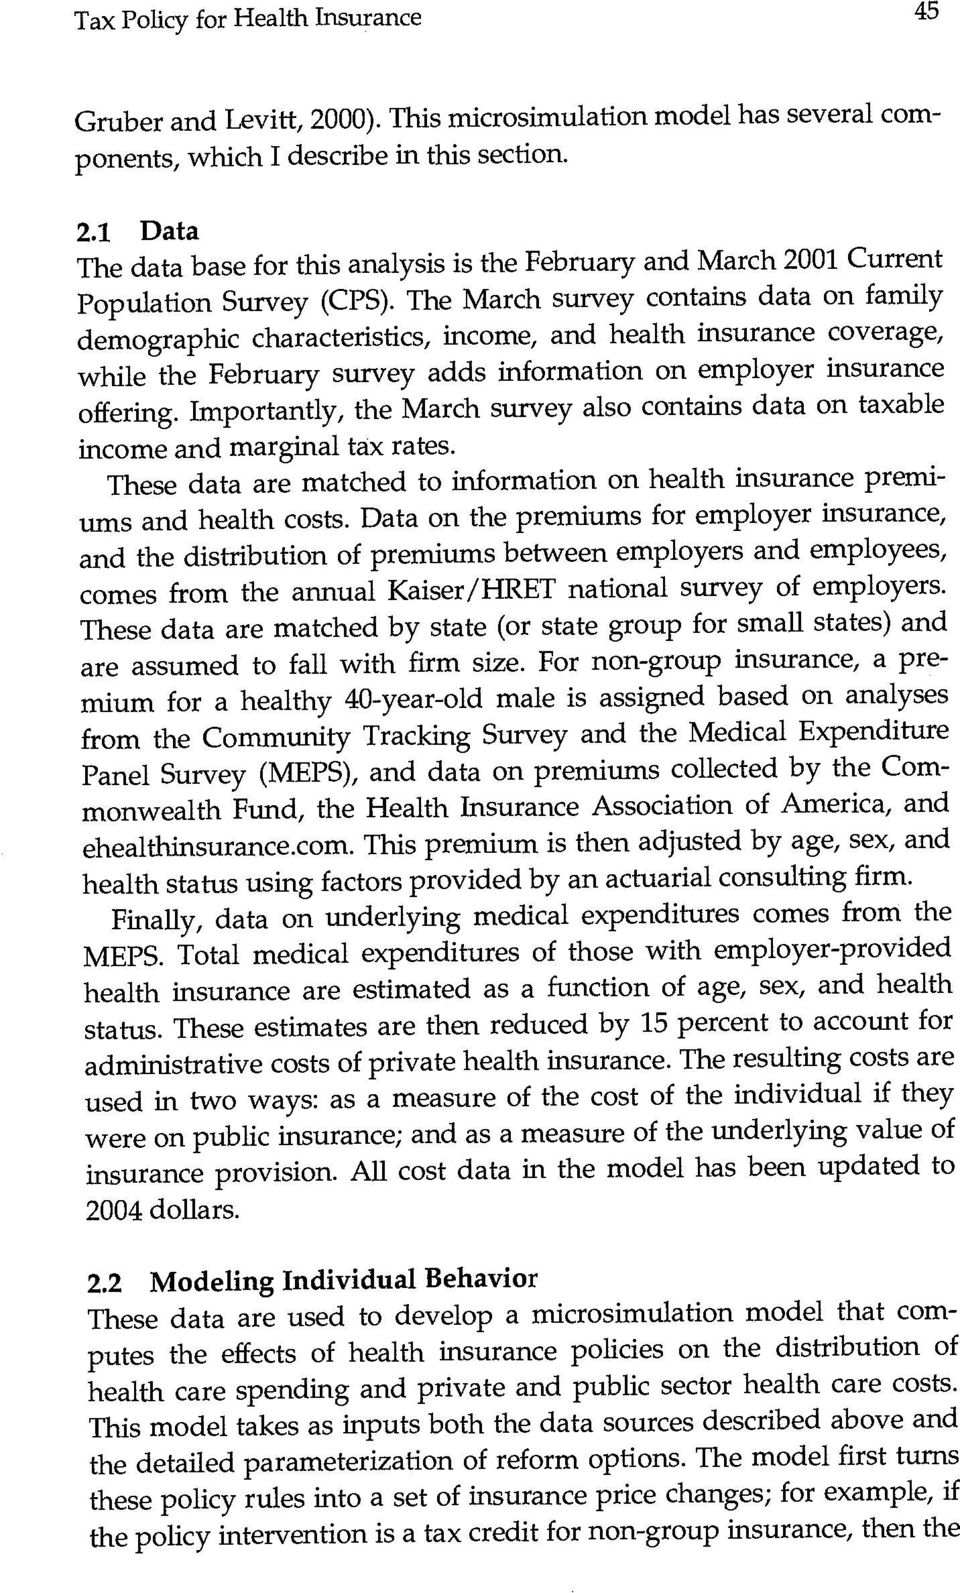 Importantly, the March survey also contains data on taxable income and marginal tax rates. These data are matched to information on health insurance premiums and health costs.